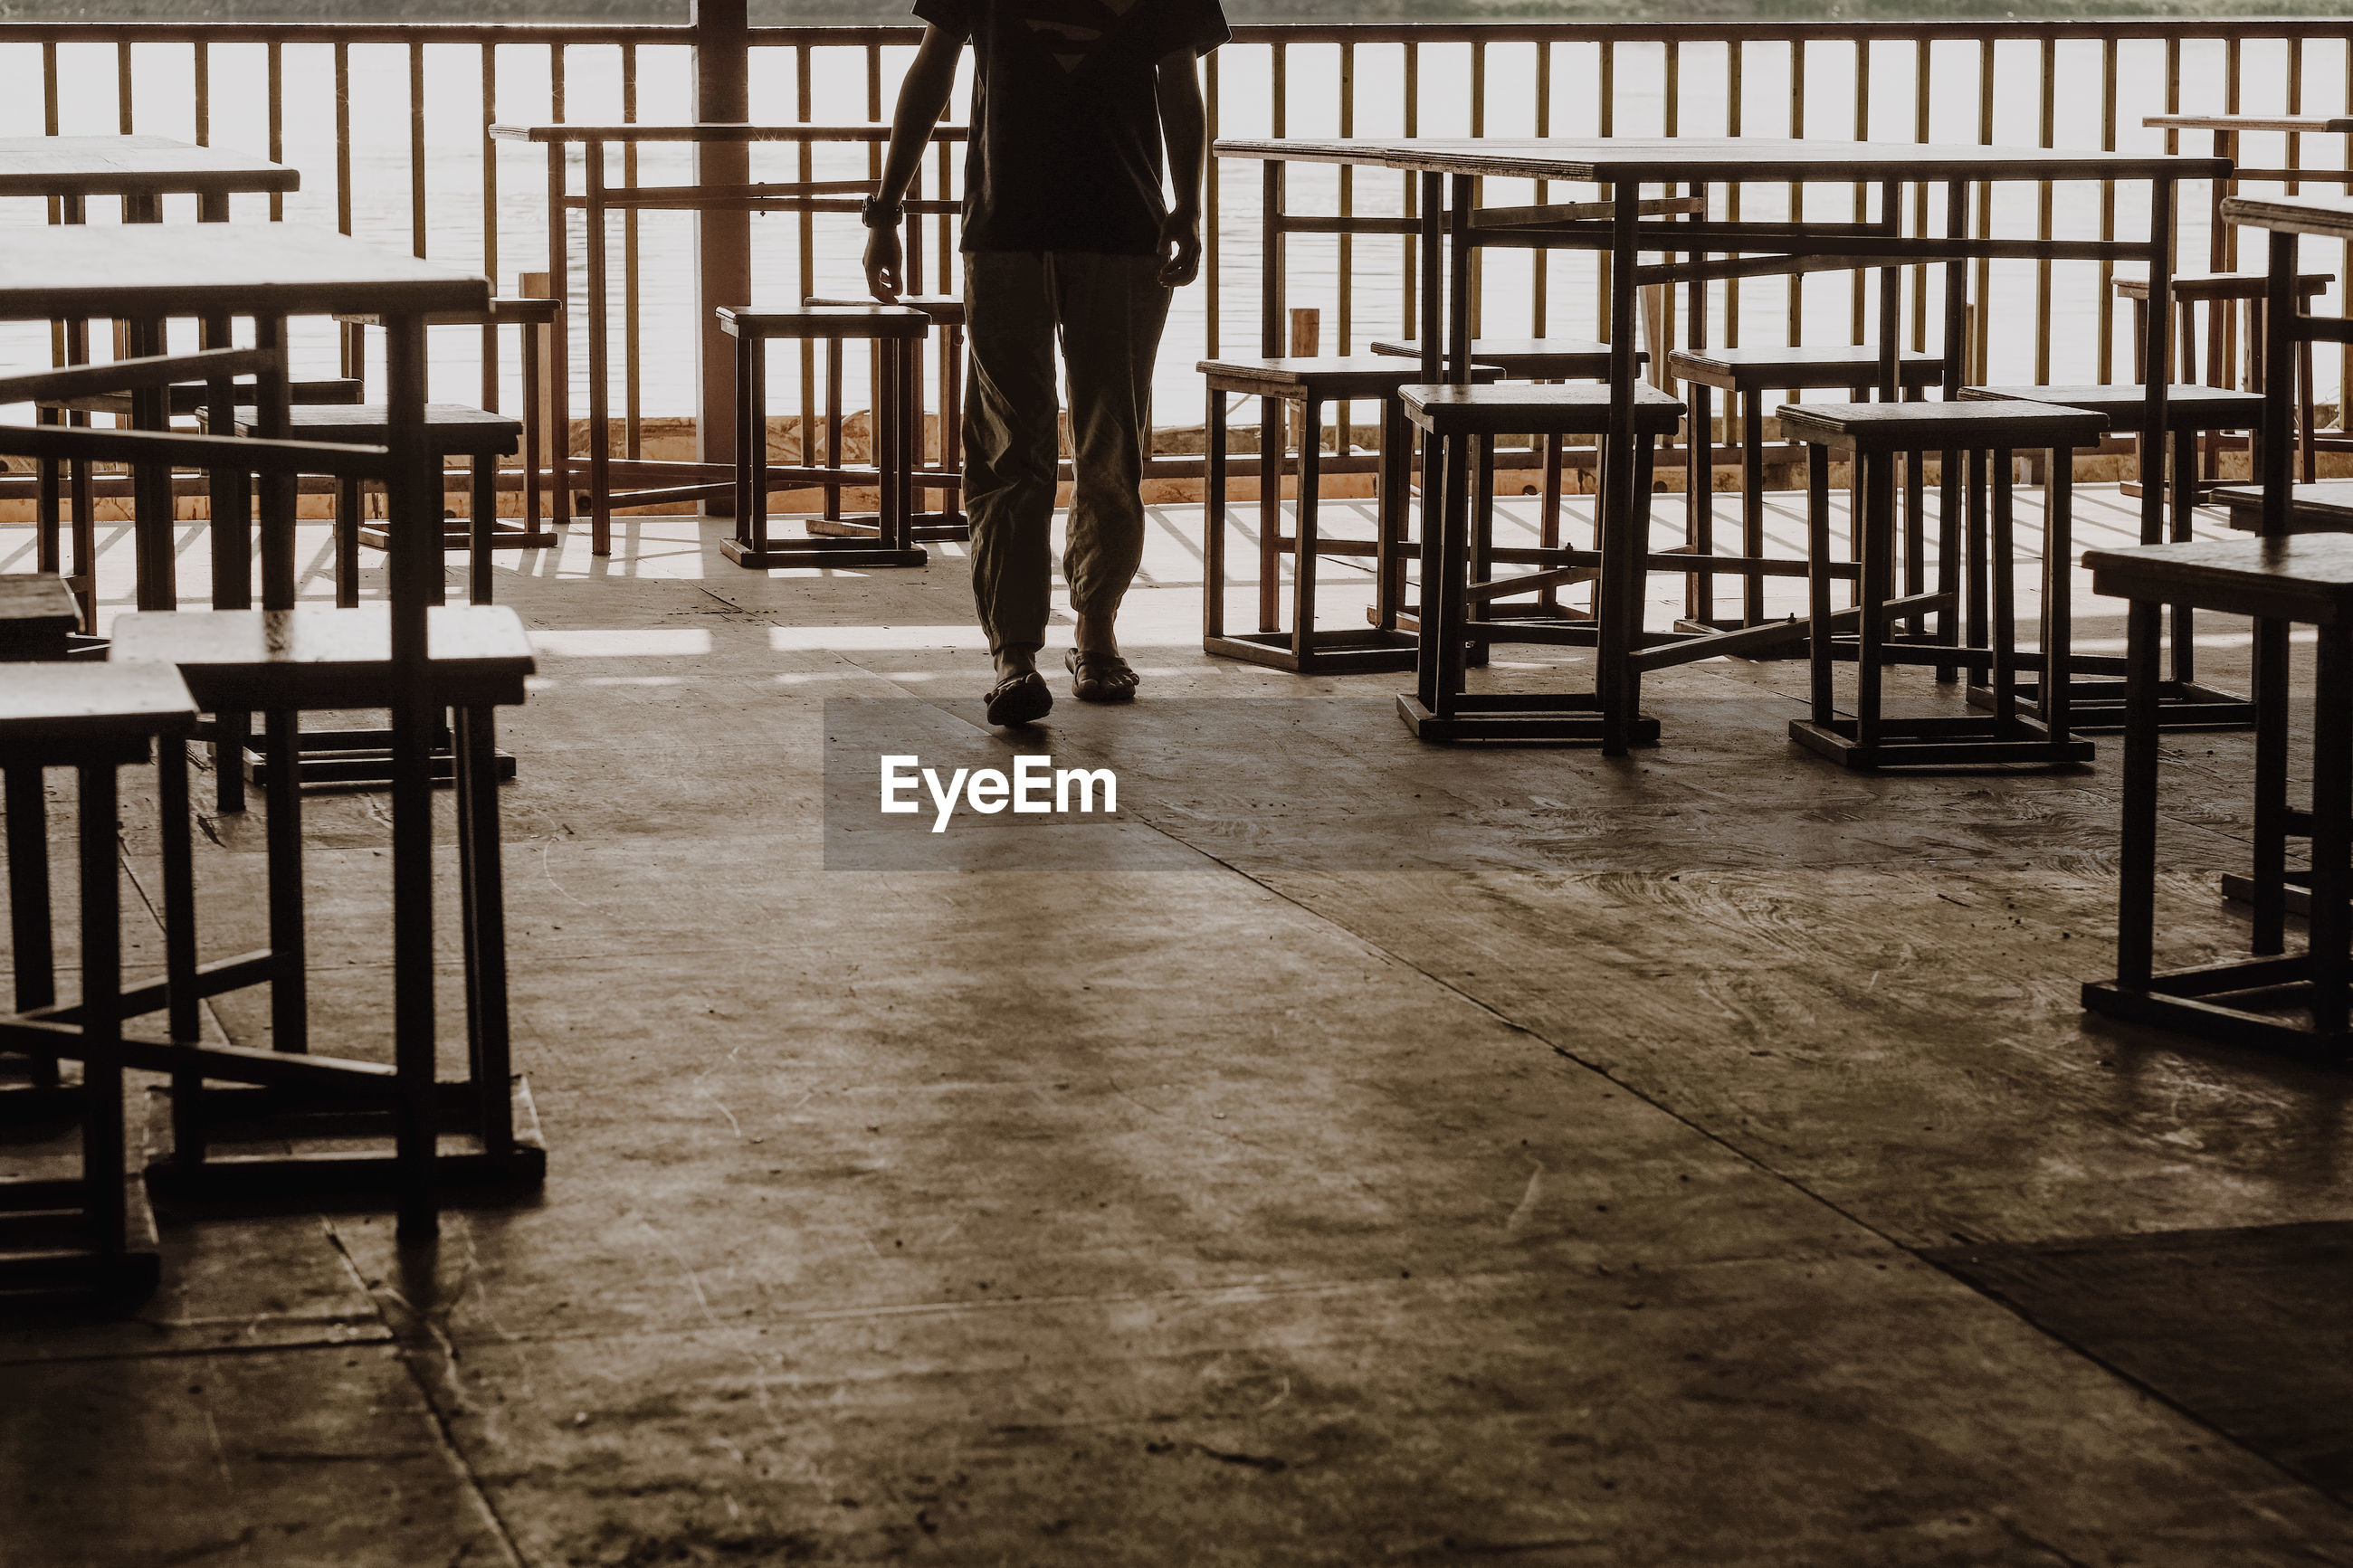 LOW SECTION OF MAN STANDING ON TABLE IN EMPTY ROOM